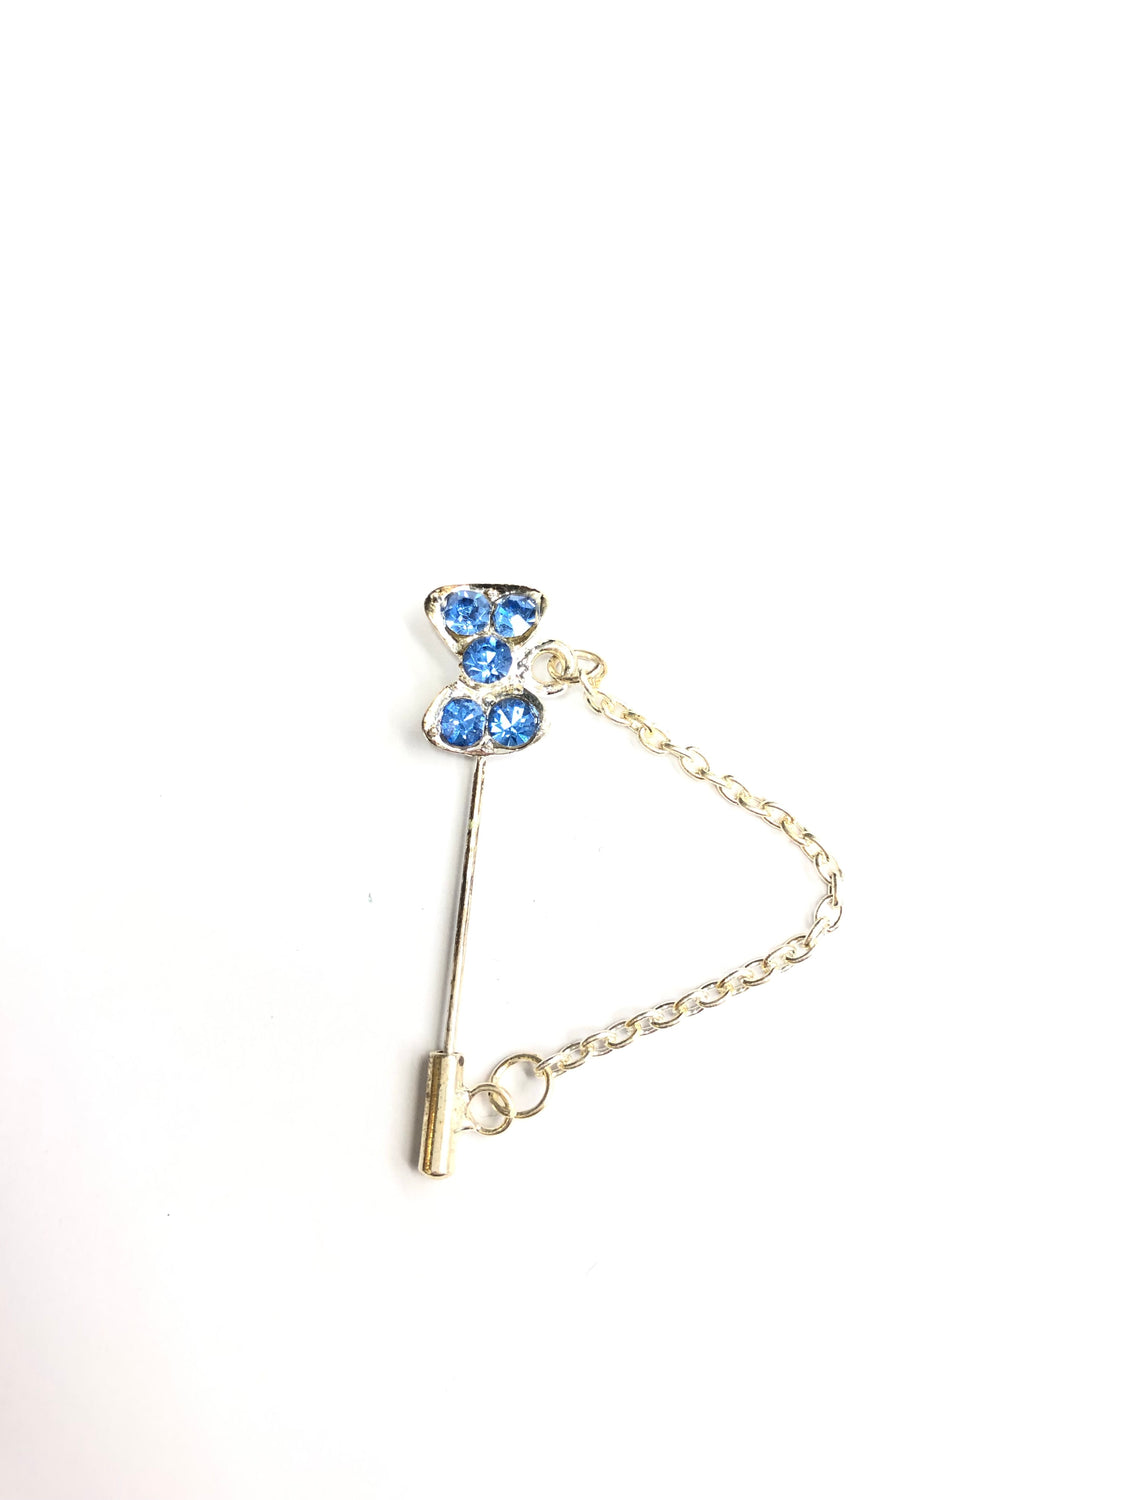 silver clasp pin with blue bow jewel and a chain